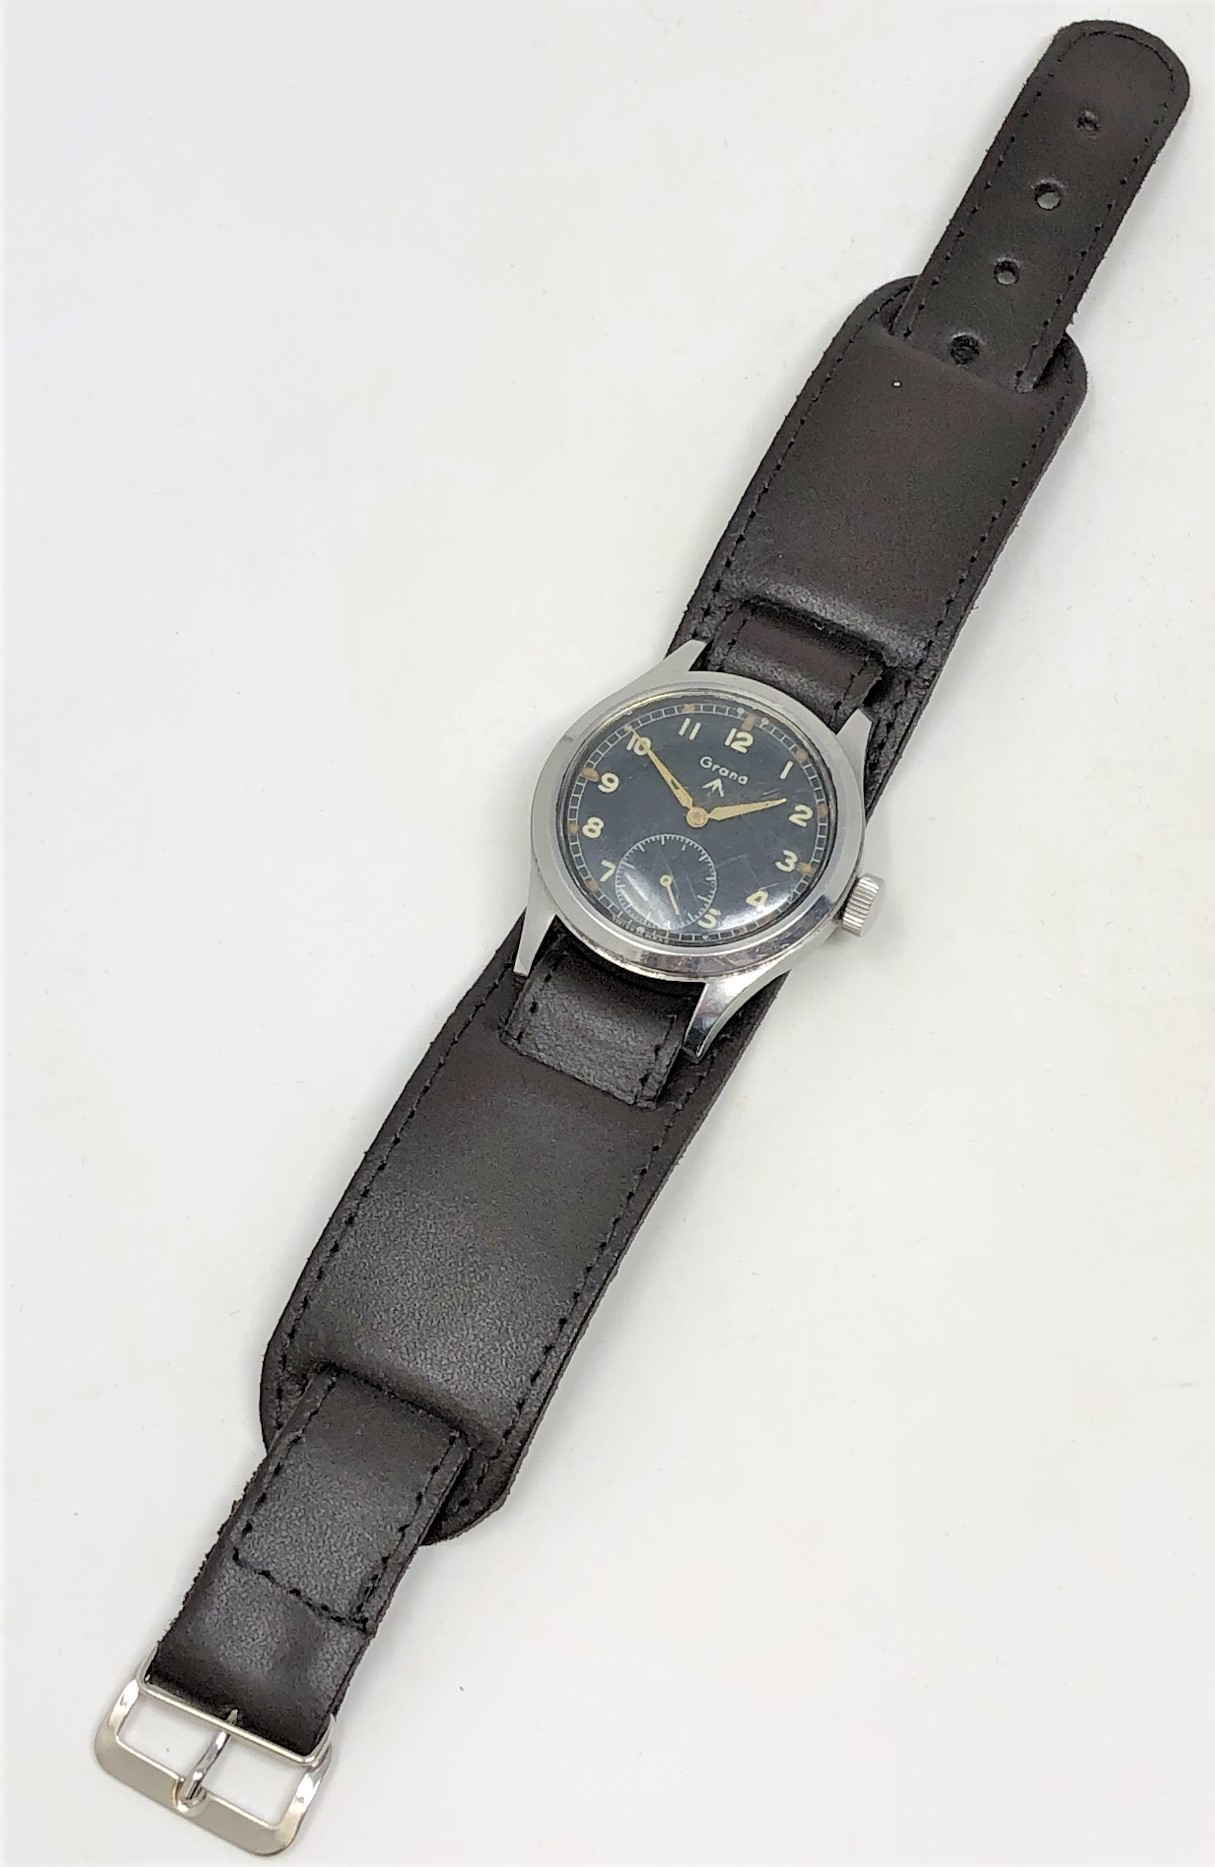 A very rare stainless steel British Military Grana wristwatch, - Image 6 of 11